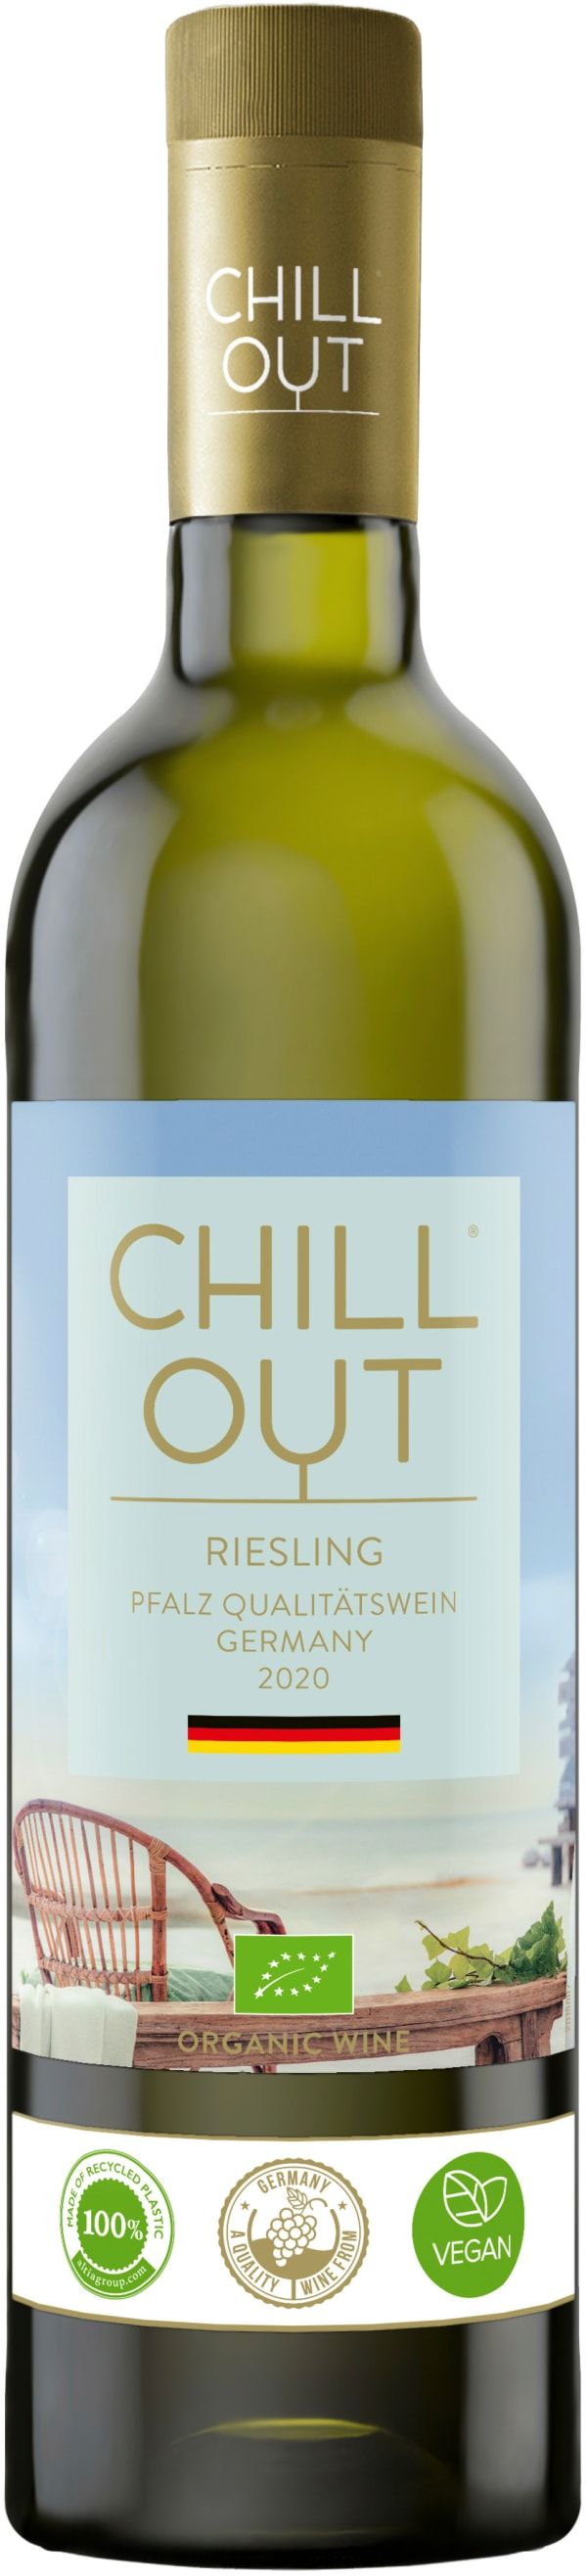 Chill Out Riesling 2020 plastic bottle